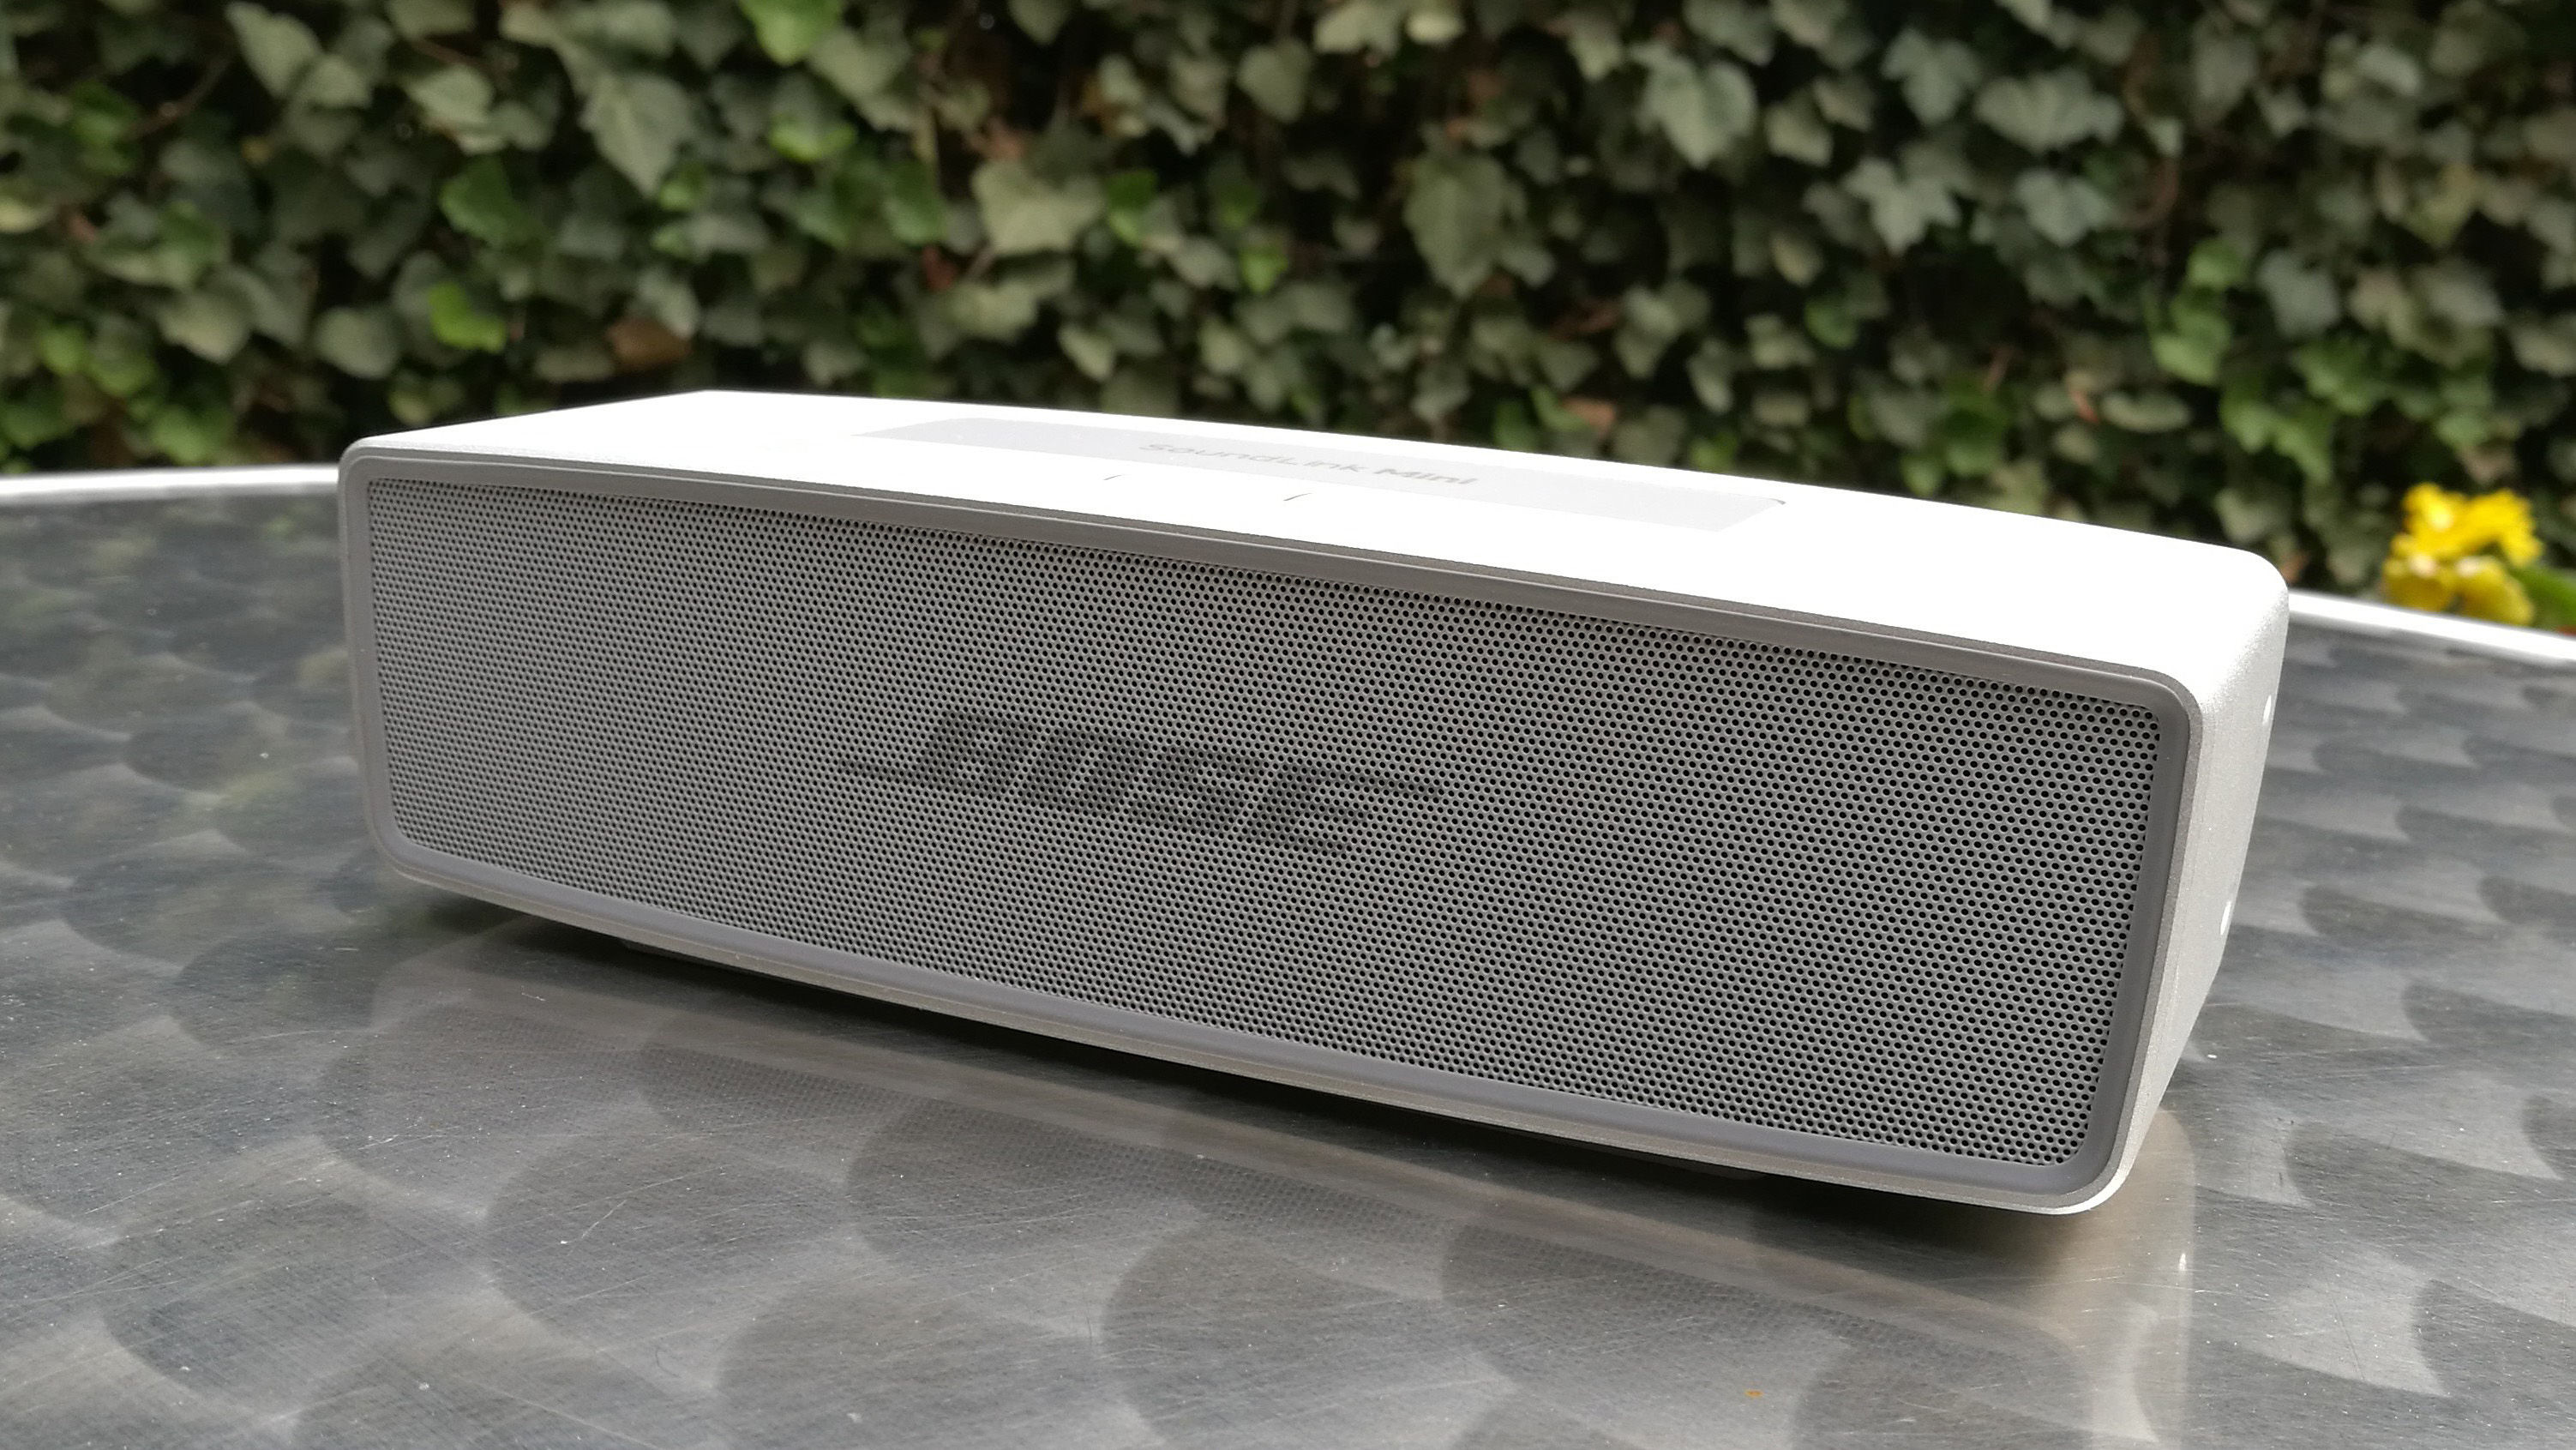 bose grey speakers. bose grey speakers